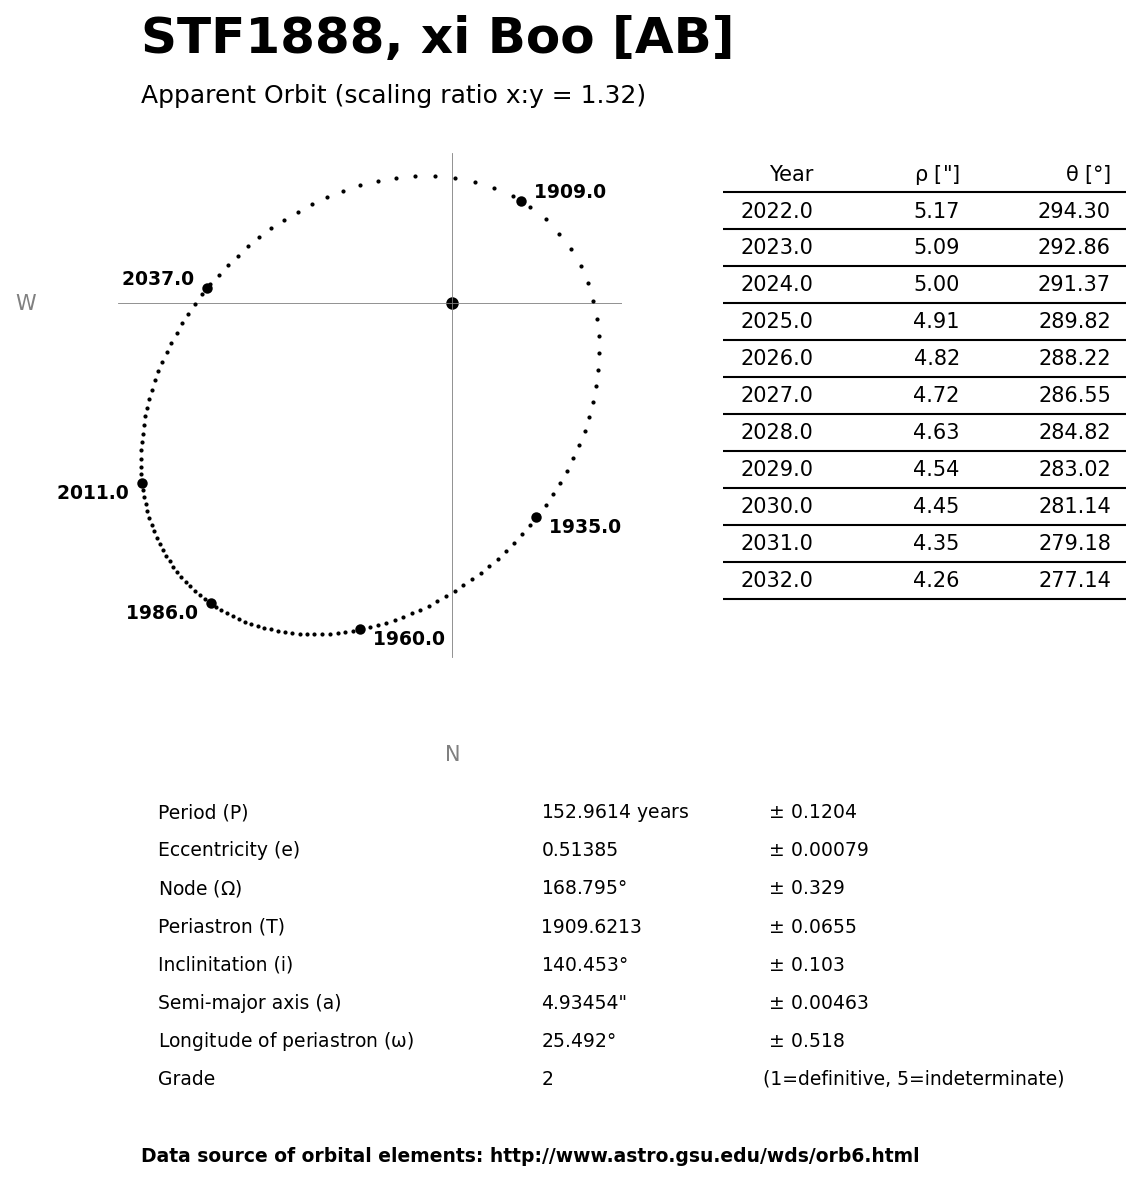 ../images/binary-star-orbits/STF1888-AB-orbit.jpg